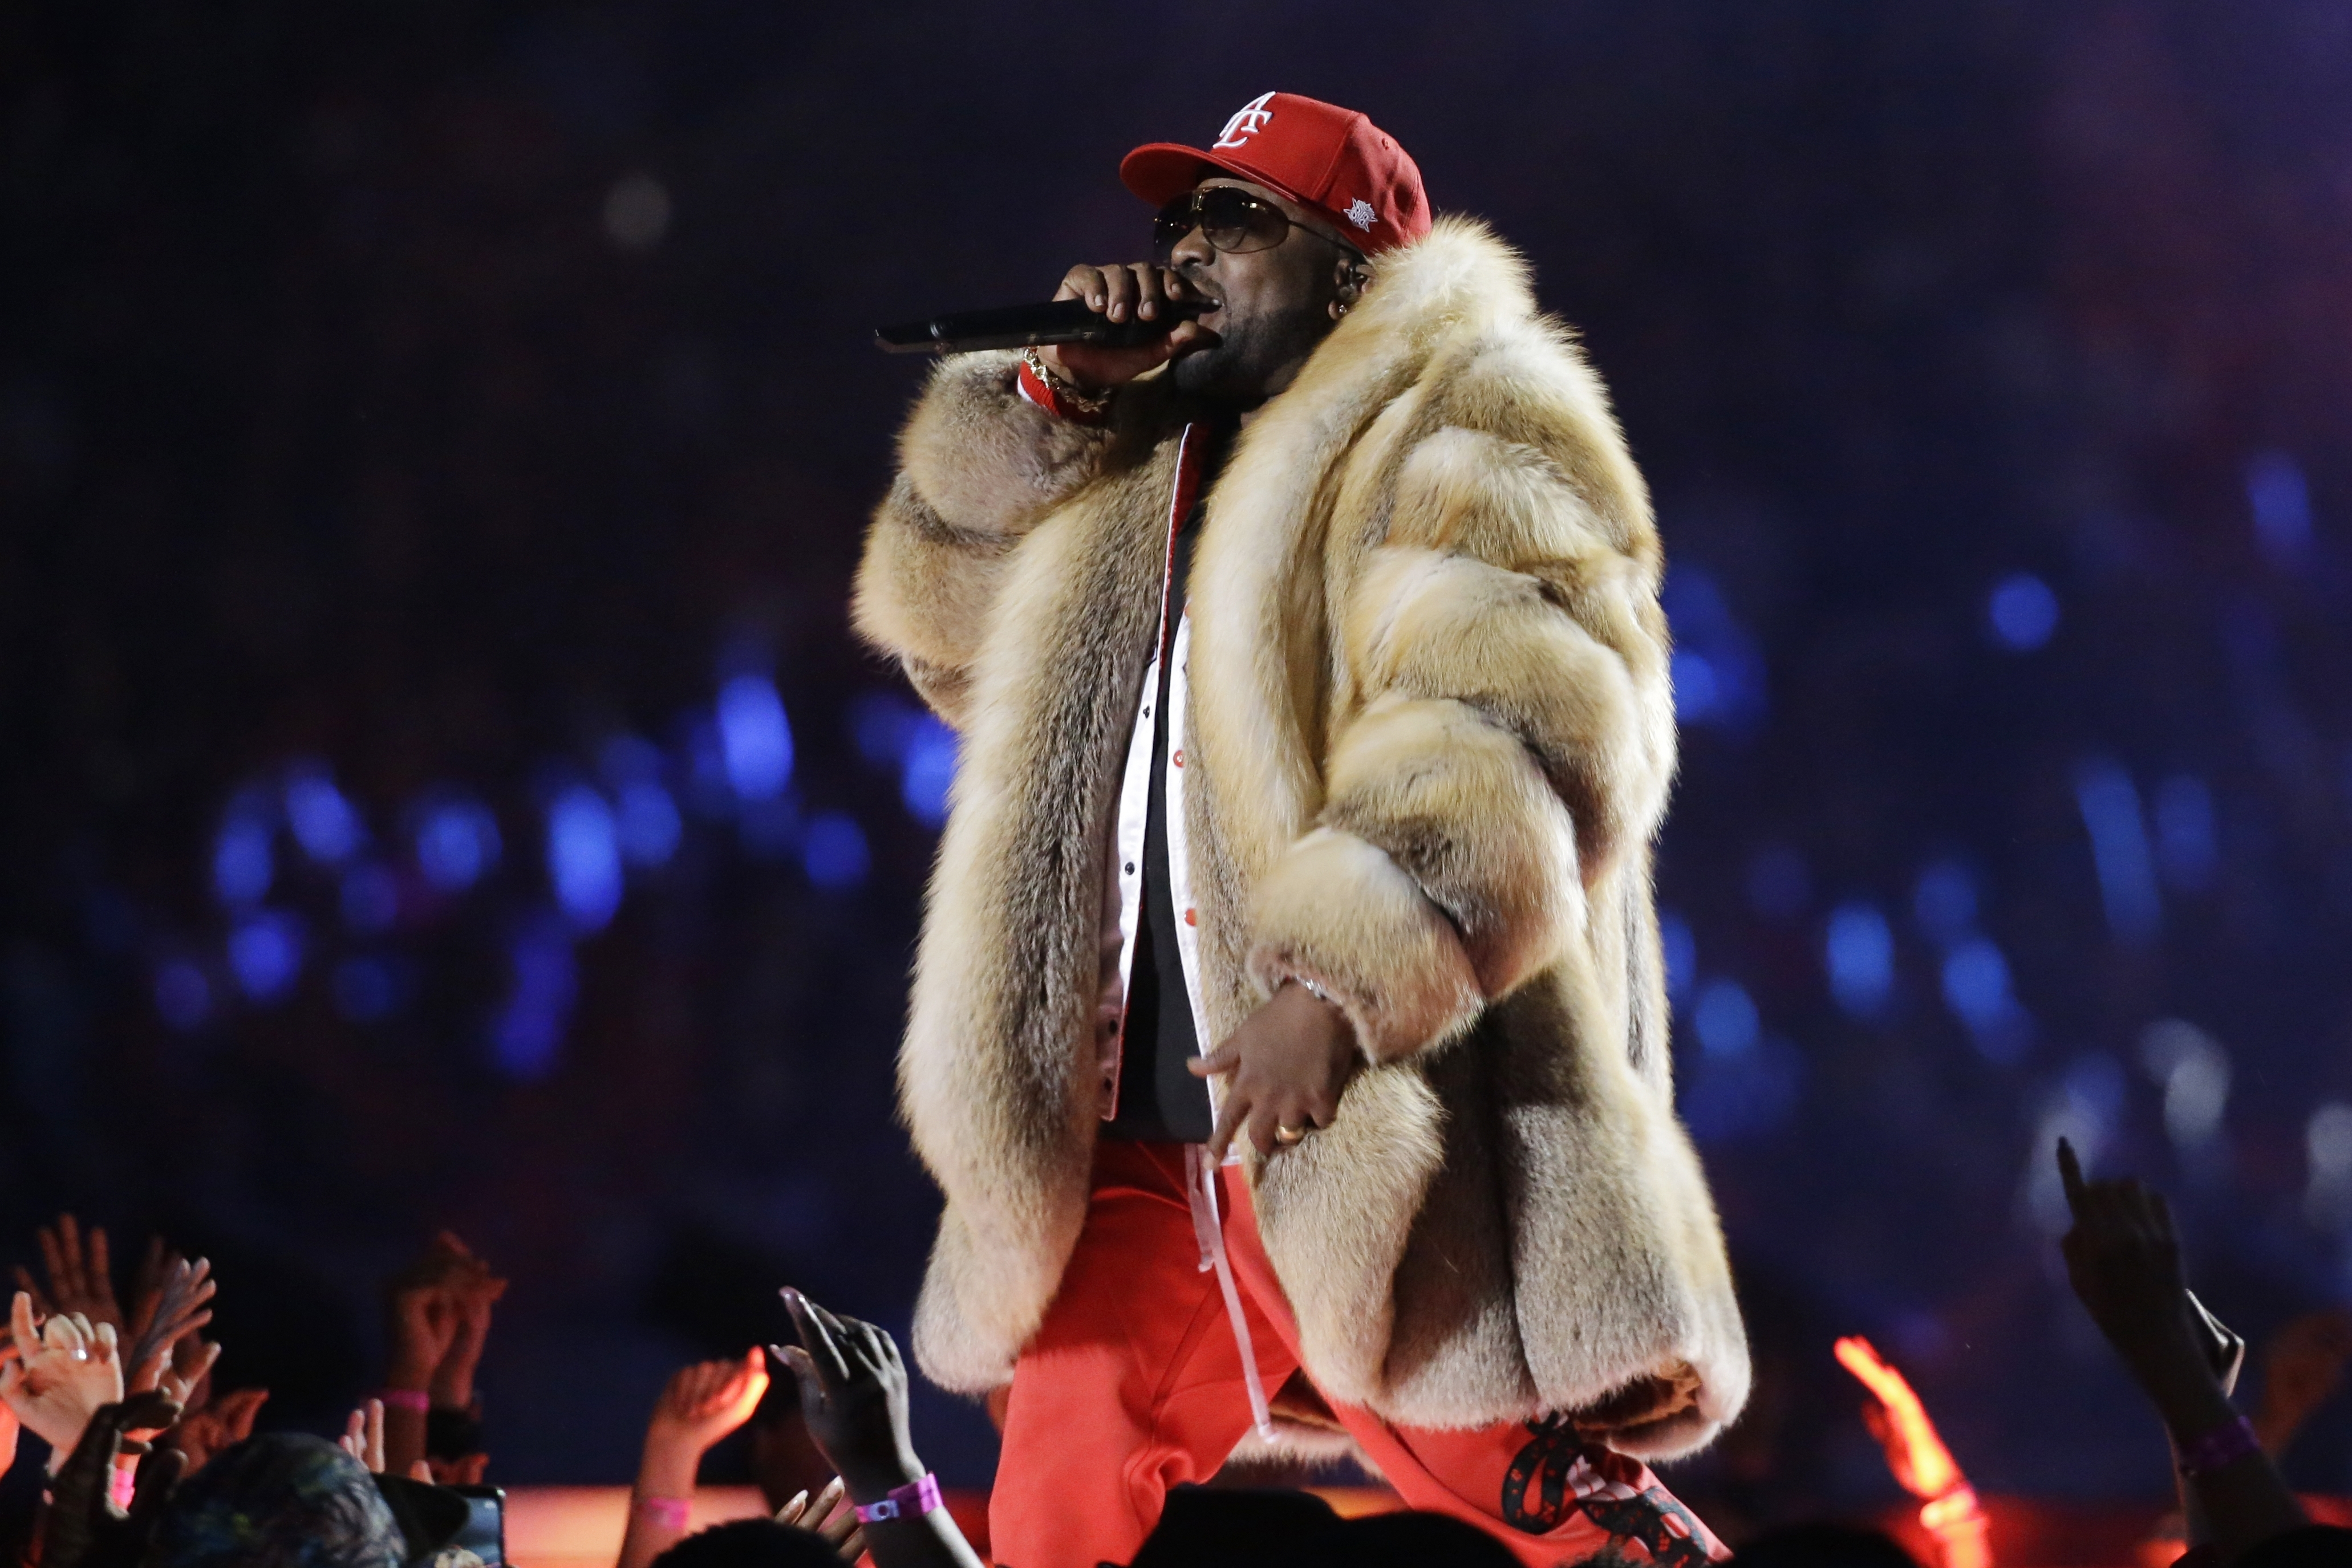 "<div class=""meta image-caption""><div class=""origin-logo origin-image ap""><span>AP</span></div><span class=""caption-text"">Big Boi performs during halftime of the NFL Super Bowl 53 football game between the Los Angeles Rams and the New England Patriots Sunday, Feb. 3, 2019, in Atlanta. (AP Photo/Mark Humphrey)</span></div>"